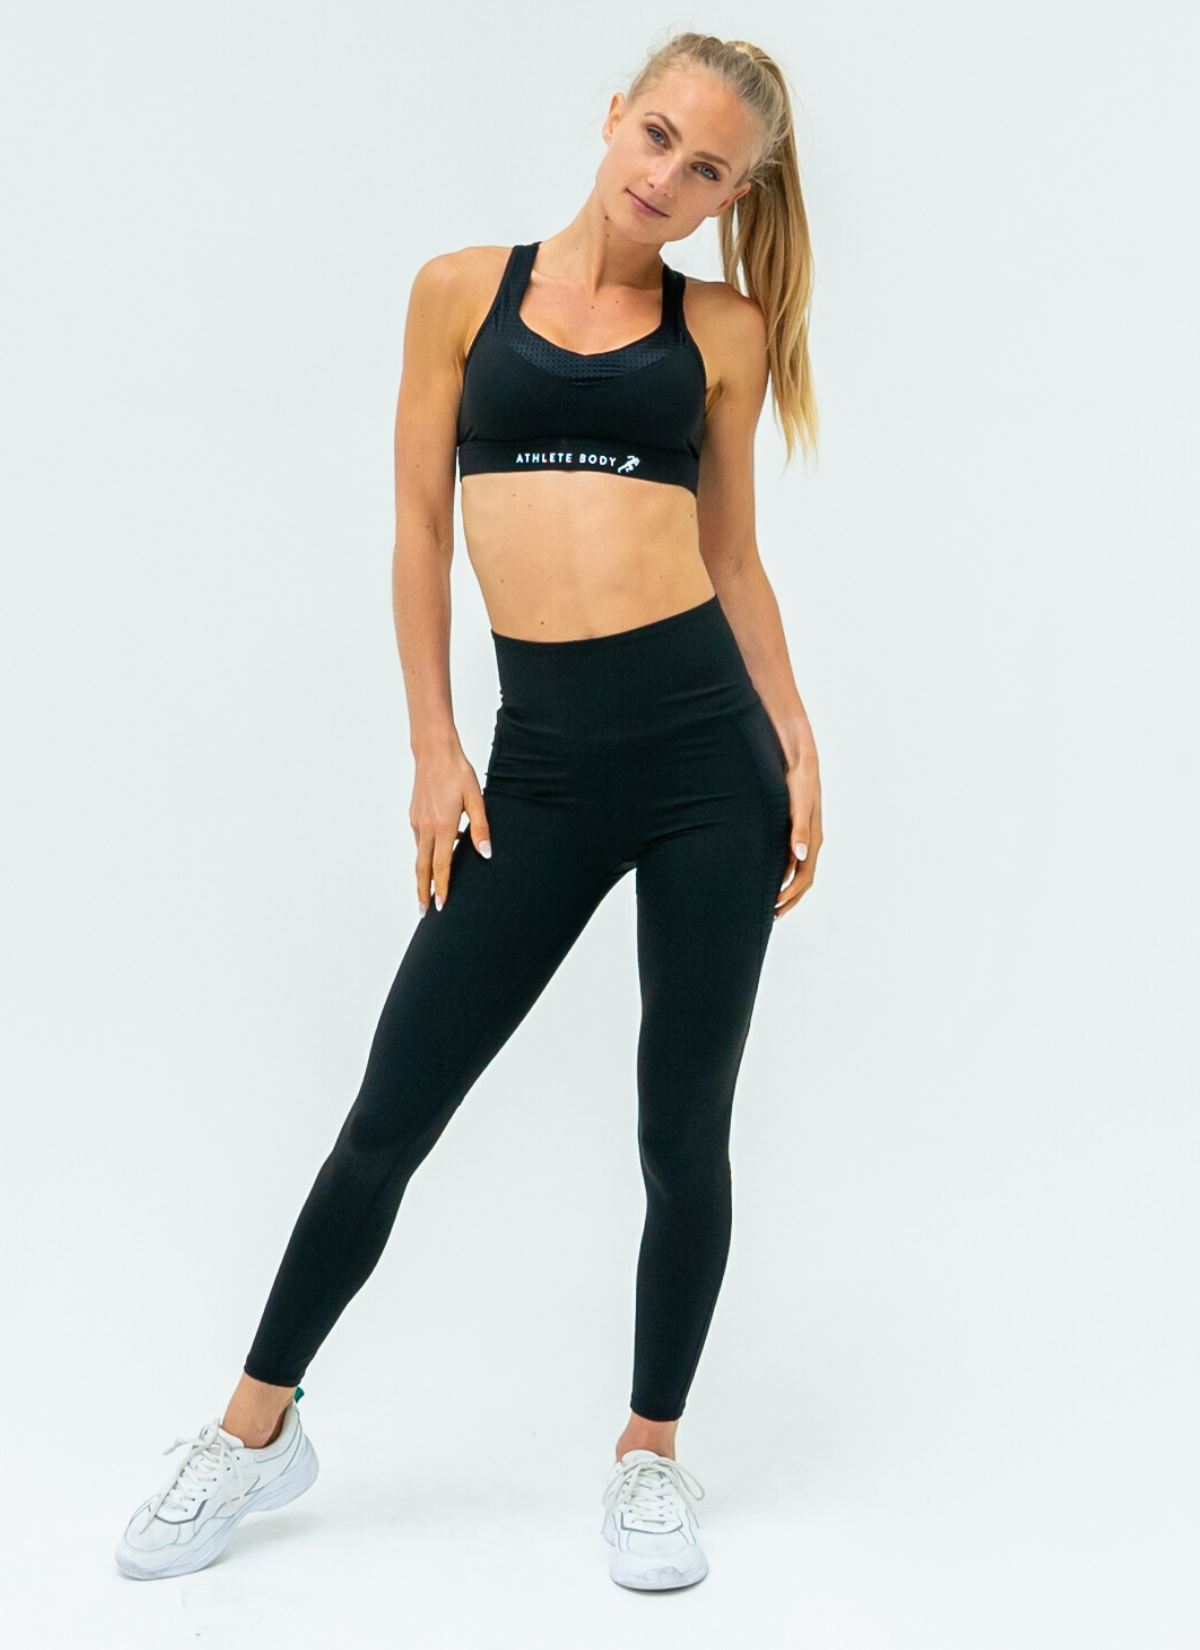 Elevate Black Yoga Set - Athlete Body